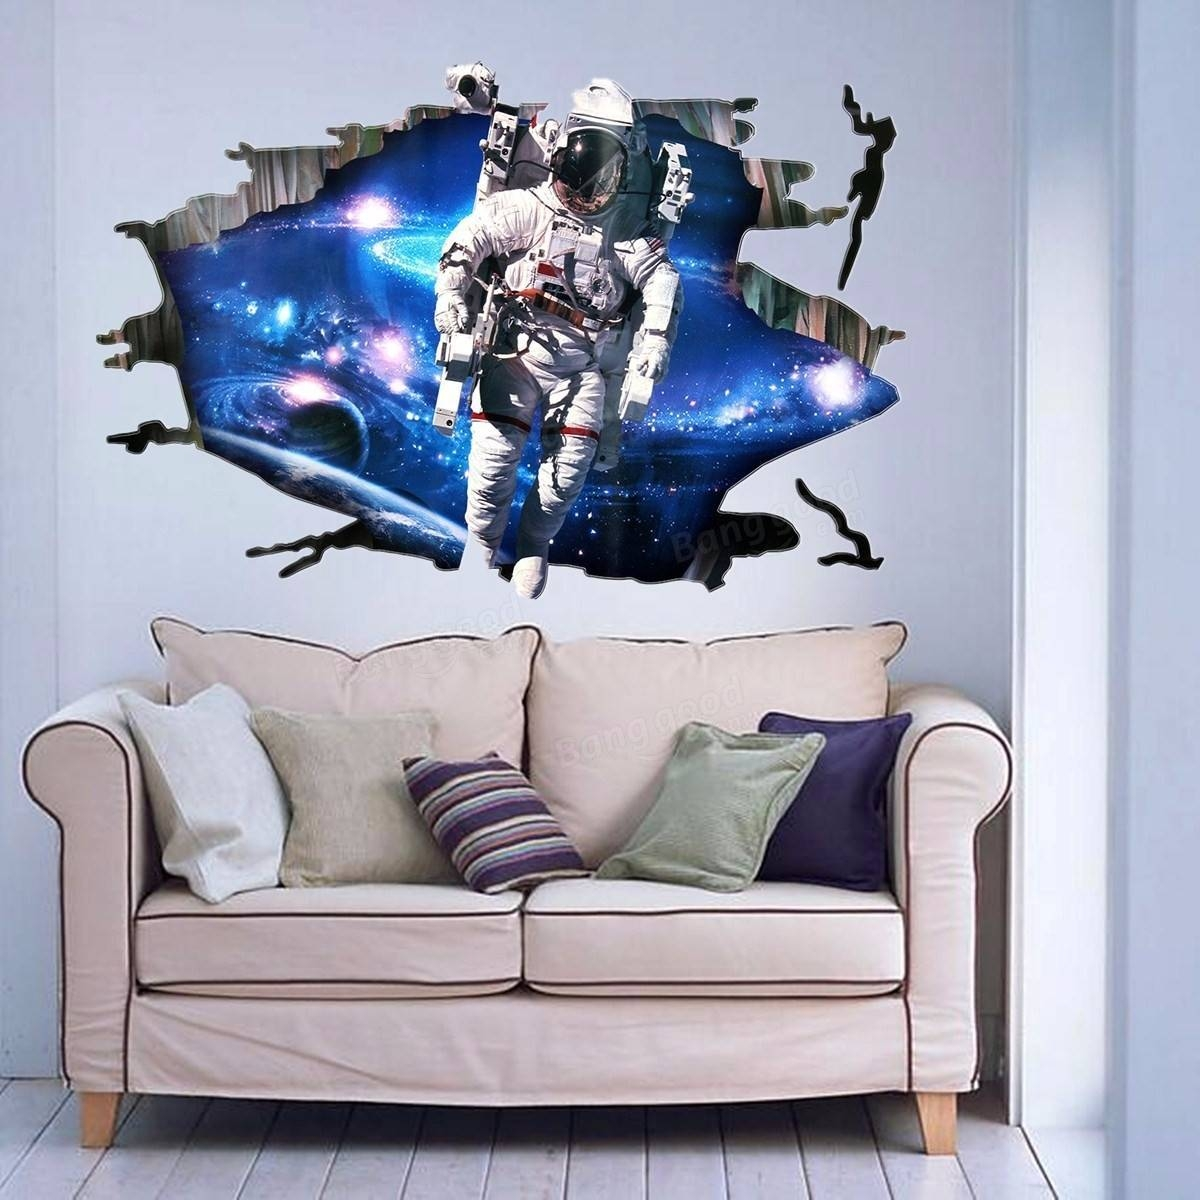 3D Wall Stickers Wallpaper Space Astronauts Decor Kids Room Decal Inside Current Astronaut 3D Wall Art (View 8 of 20)